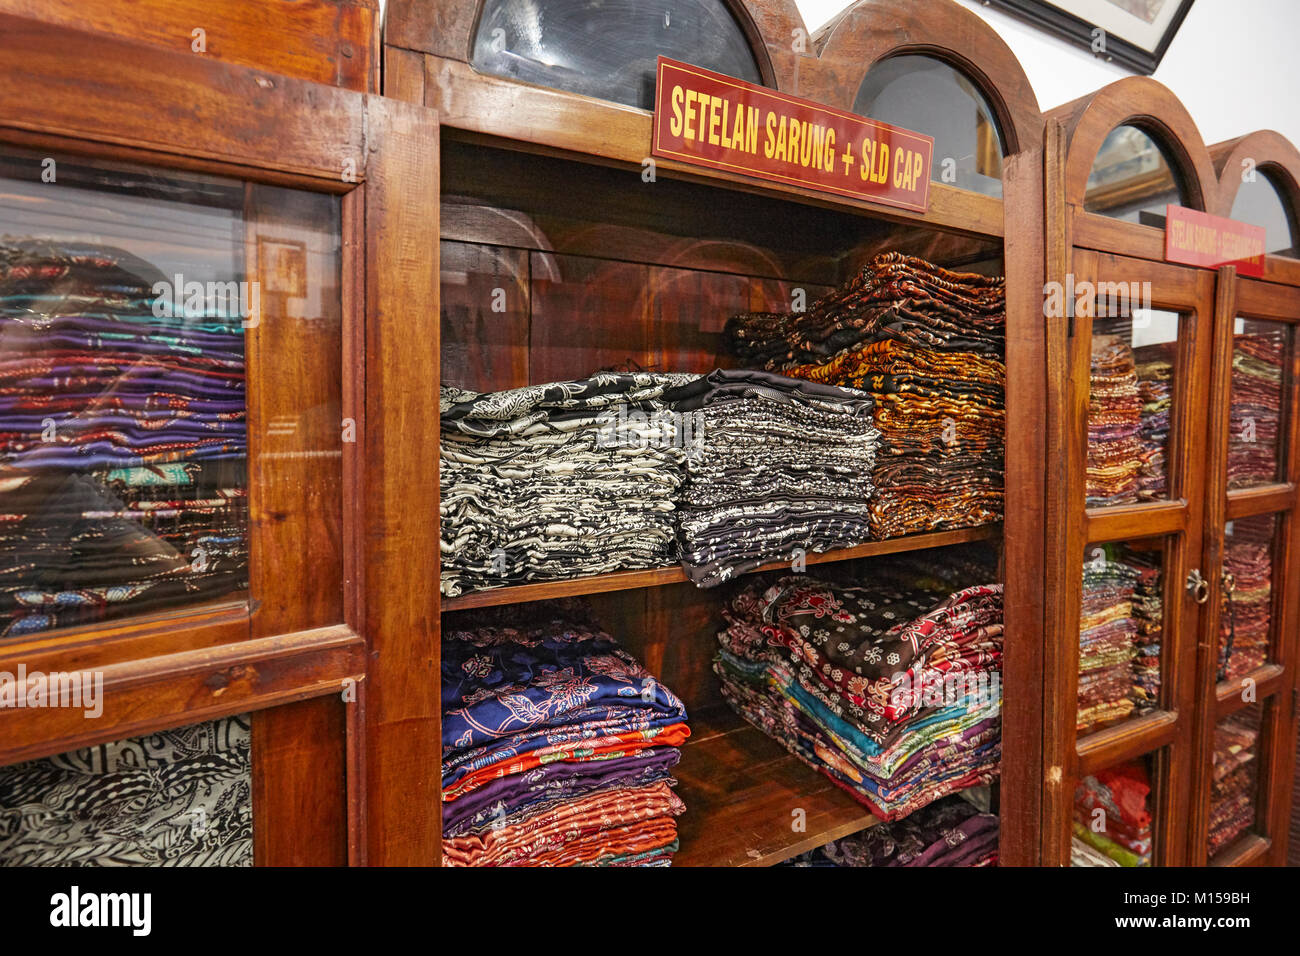 Sarung Stock Photos Images Alamy Cap Gajah Stacks Of Folded Silk Batik Sarongs For Sale In Hamzah Shop Yogyakarta Java